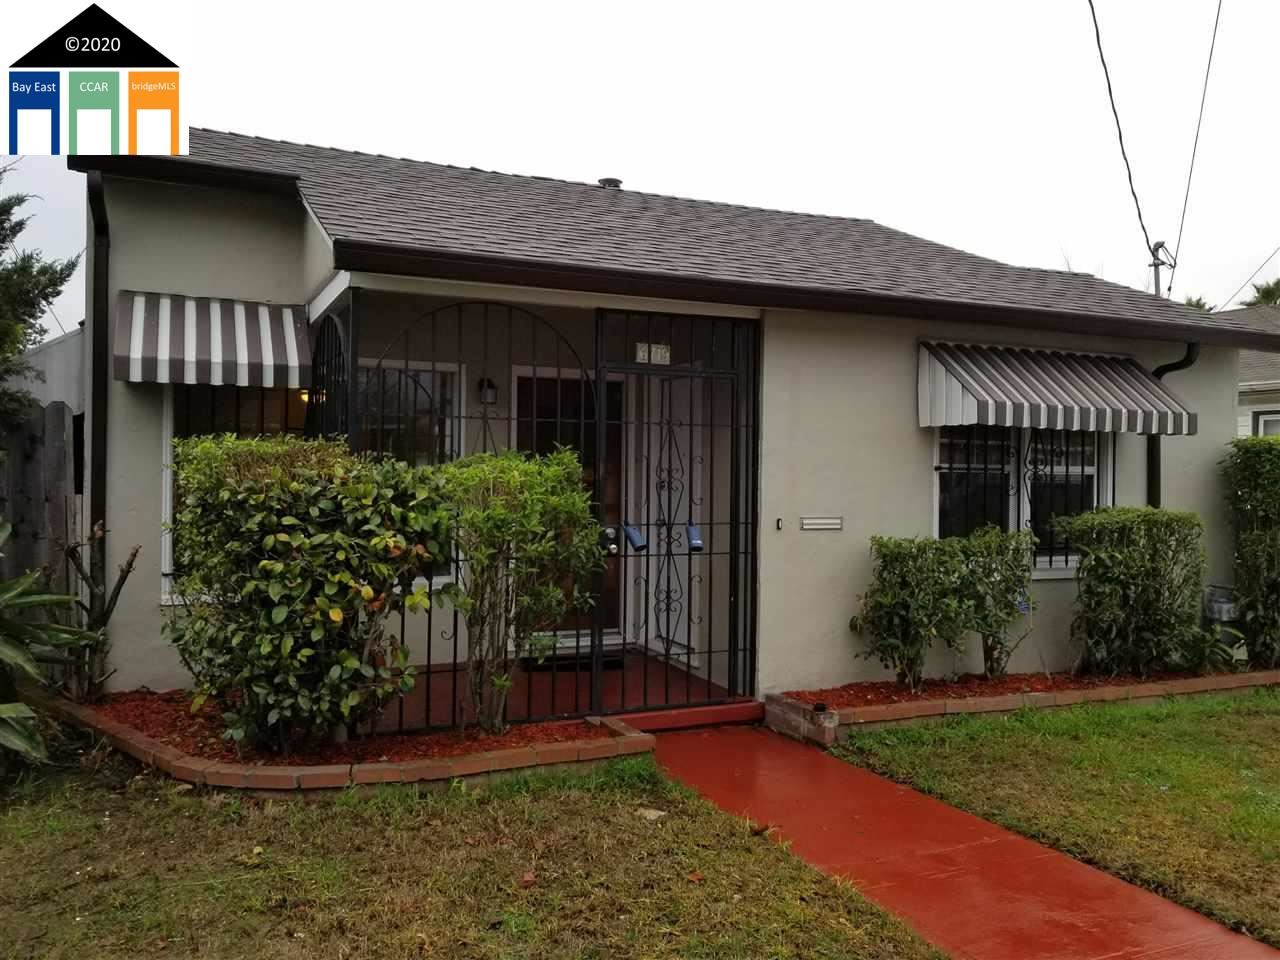 Photo for 6719 Eastlawn St, OAKLAND, CA 94621 (MLS # 40900193)